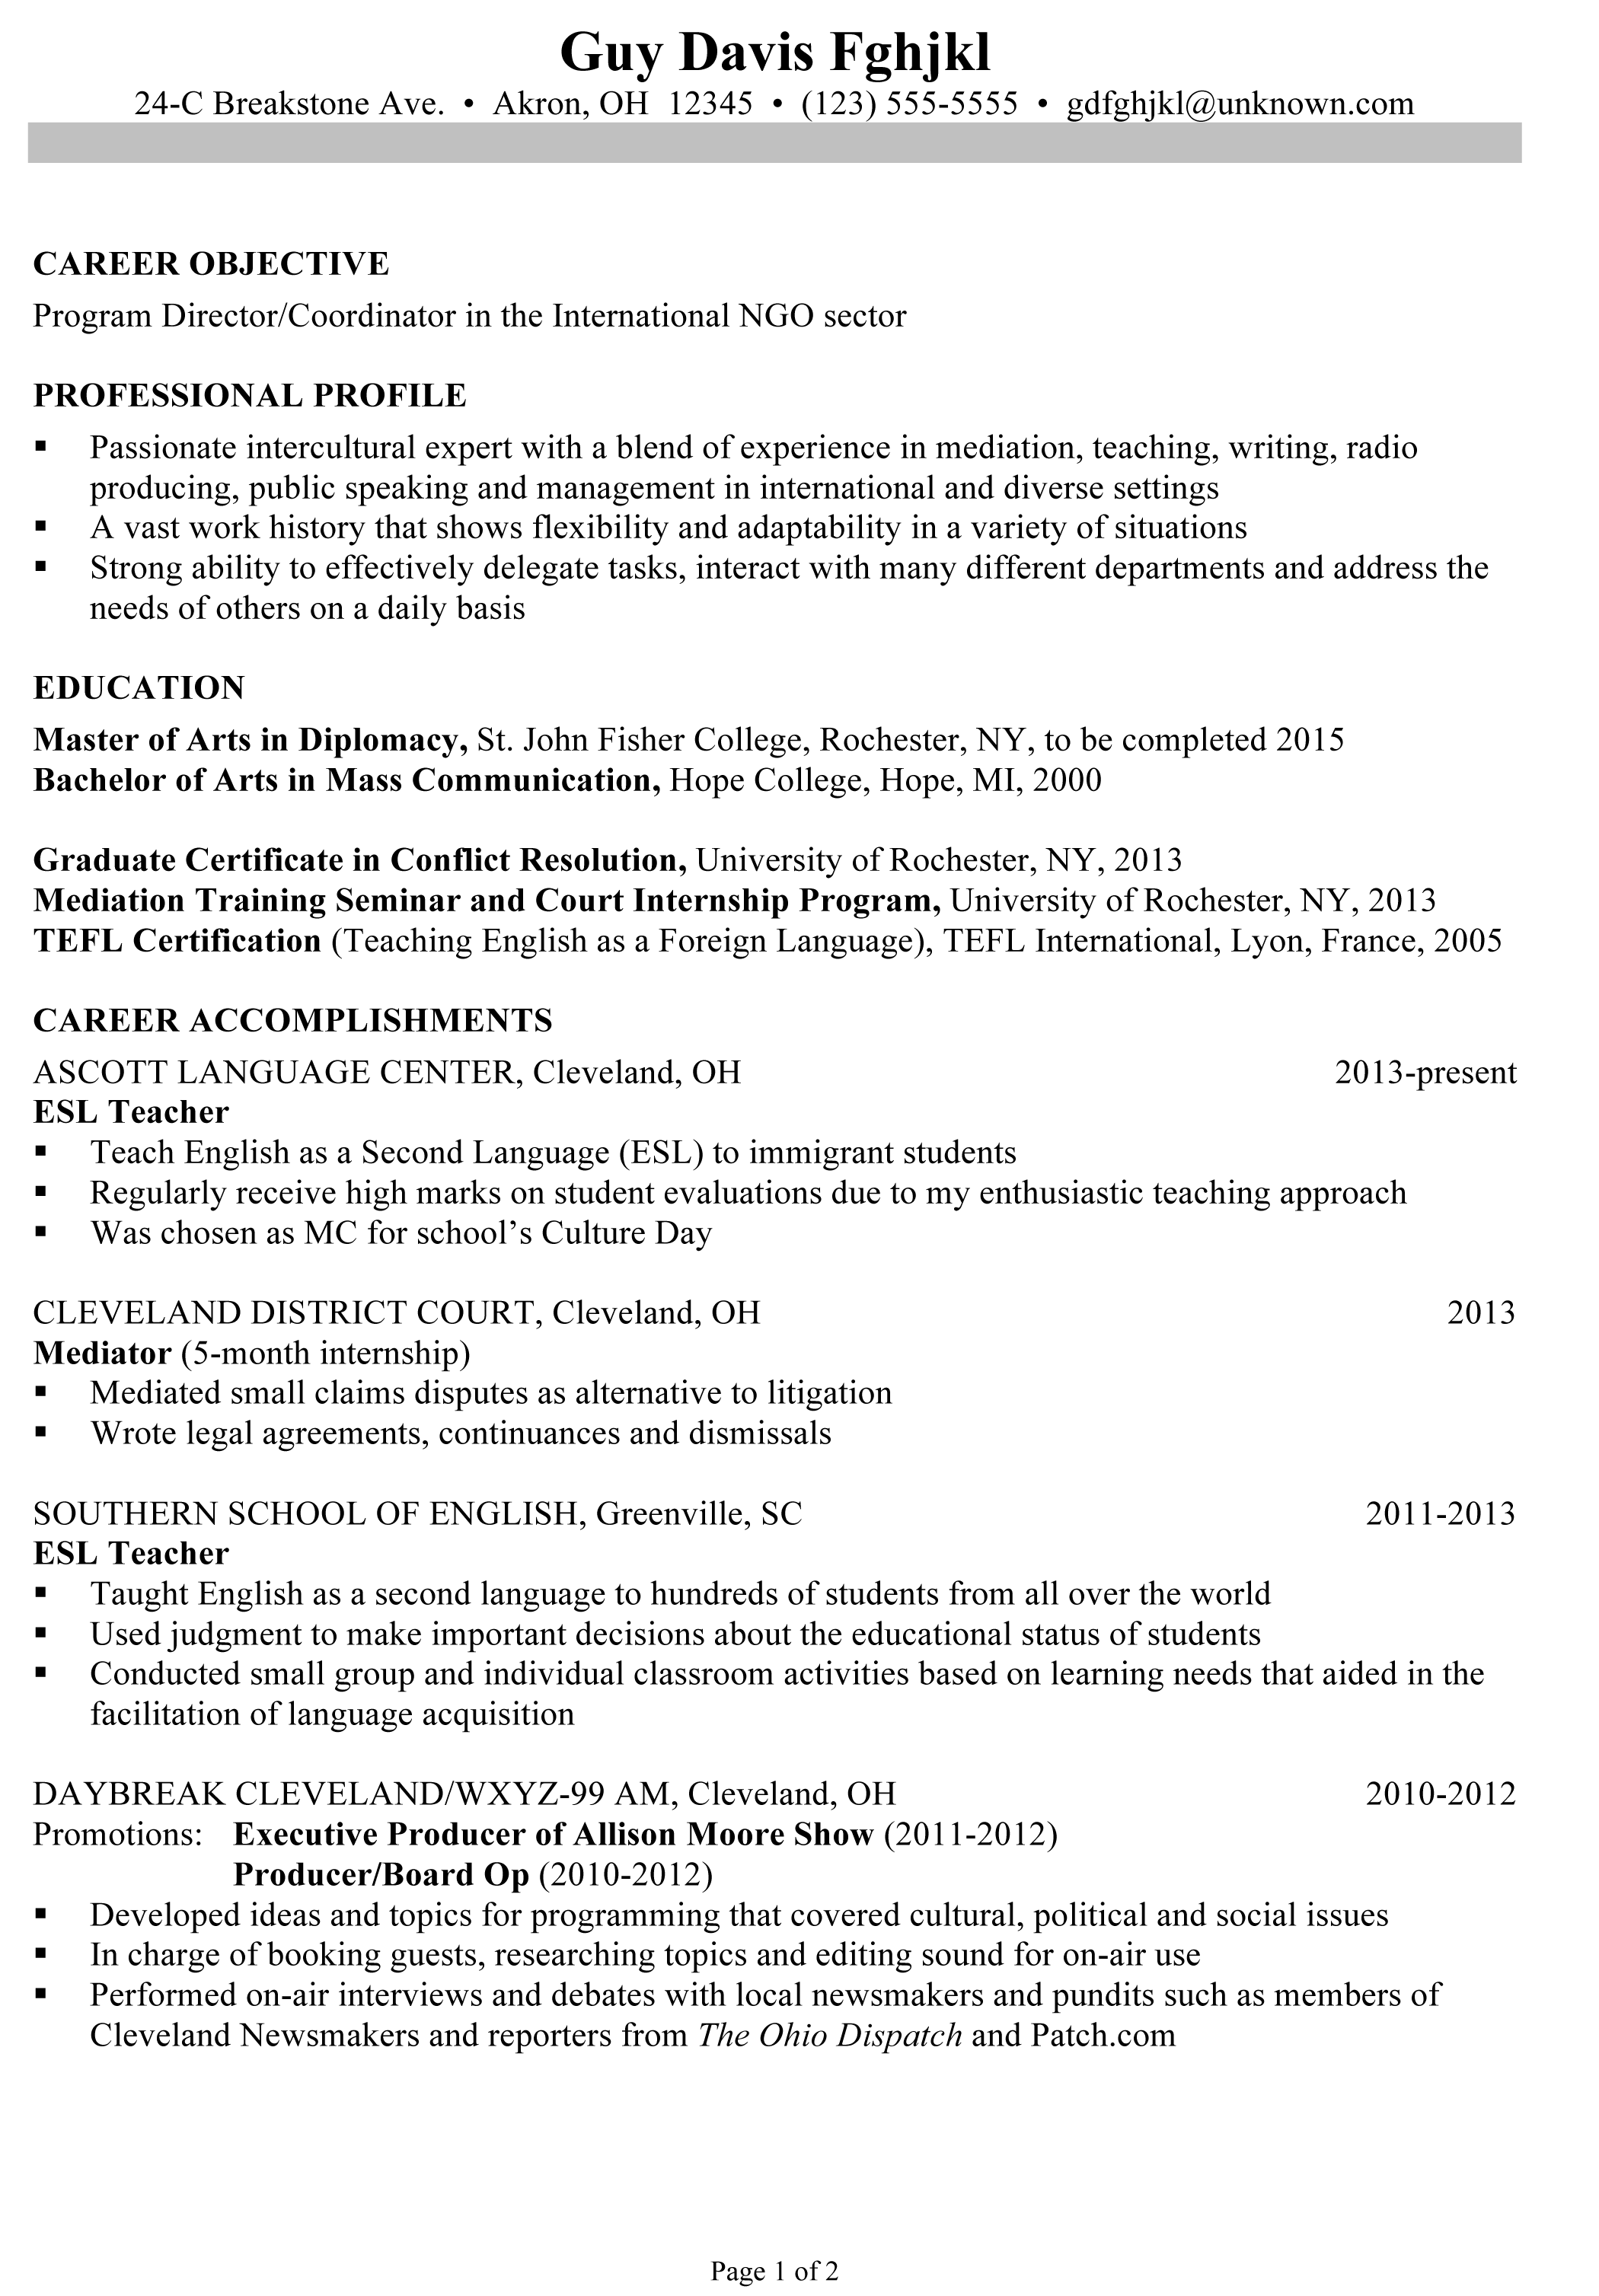 Professional Summary For Resume Examples